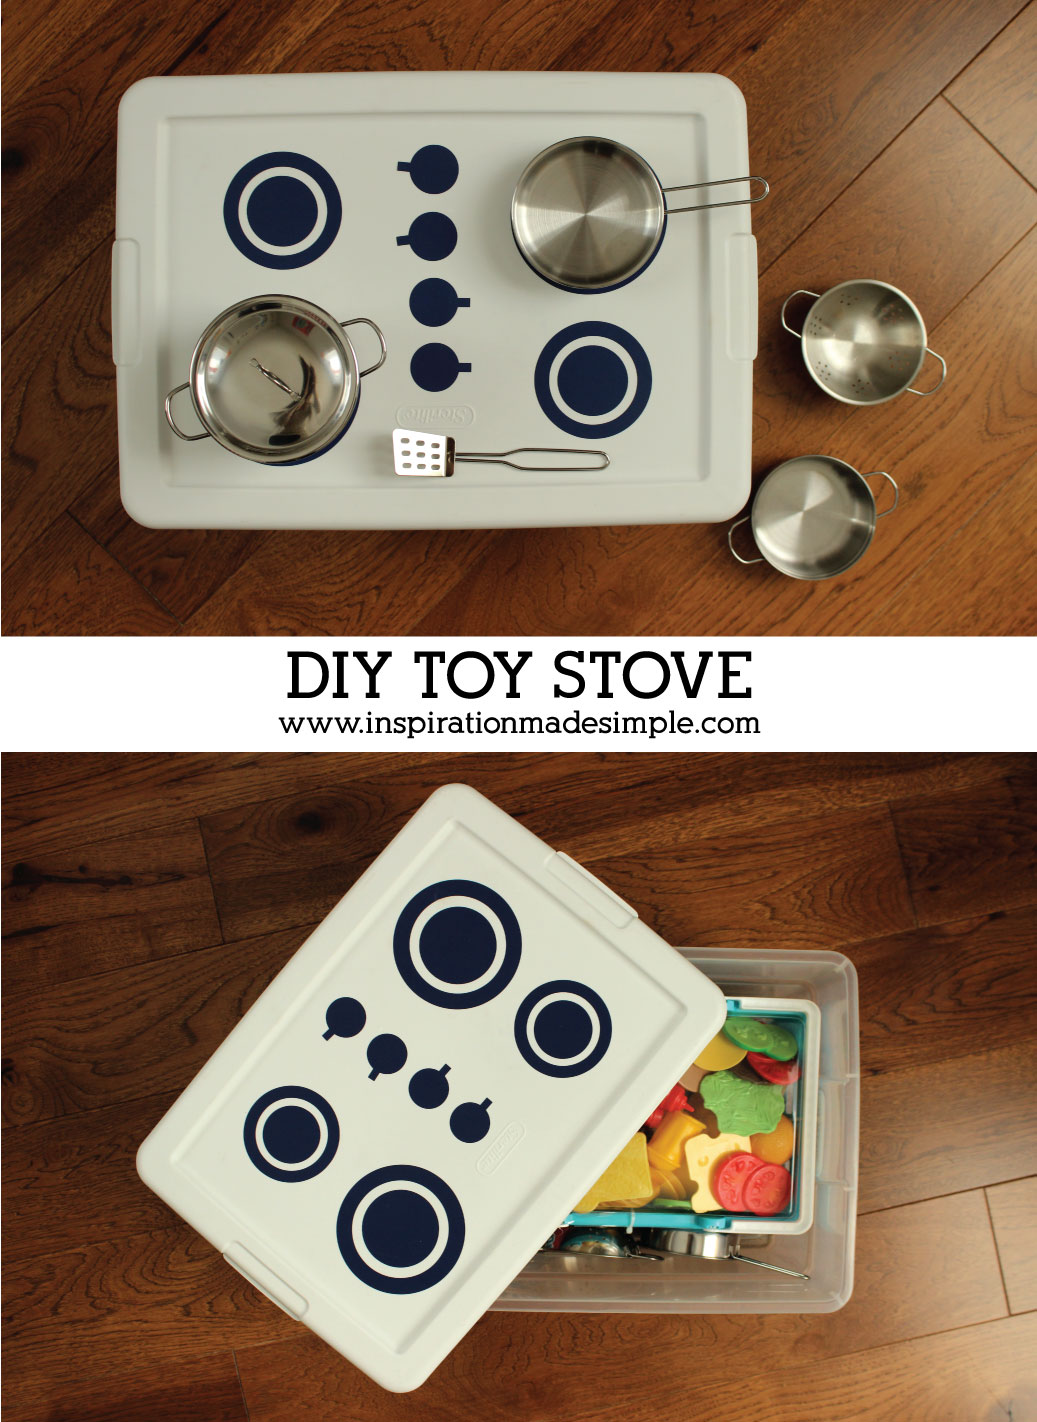 DIY Play Tote Stove Idea